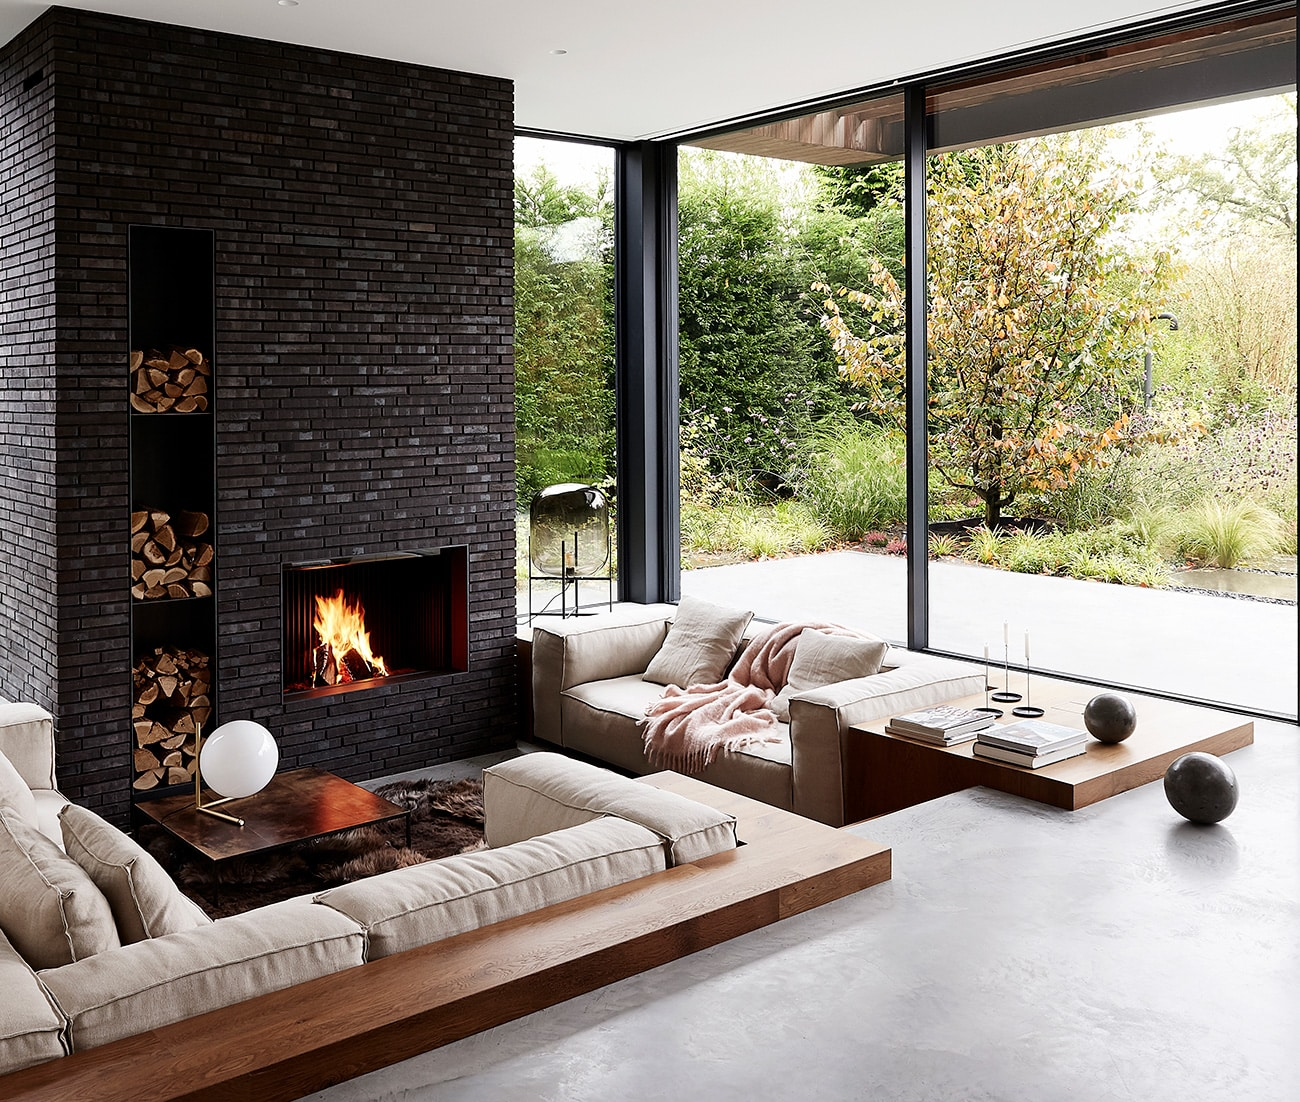 Site: Marmol Radziner in the Landscape Amsterdam Netherlands house sunken living room fireplace view